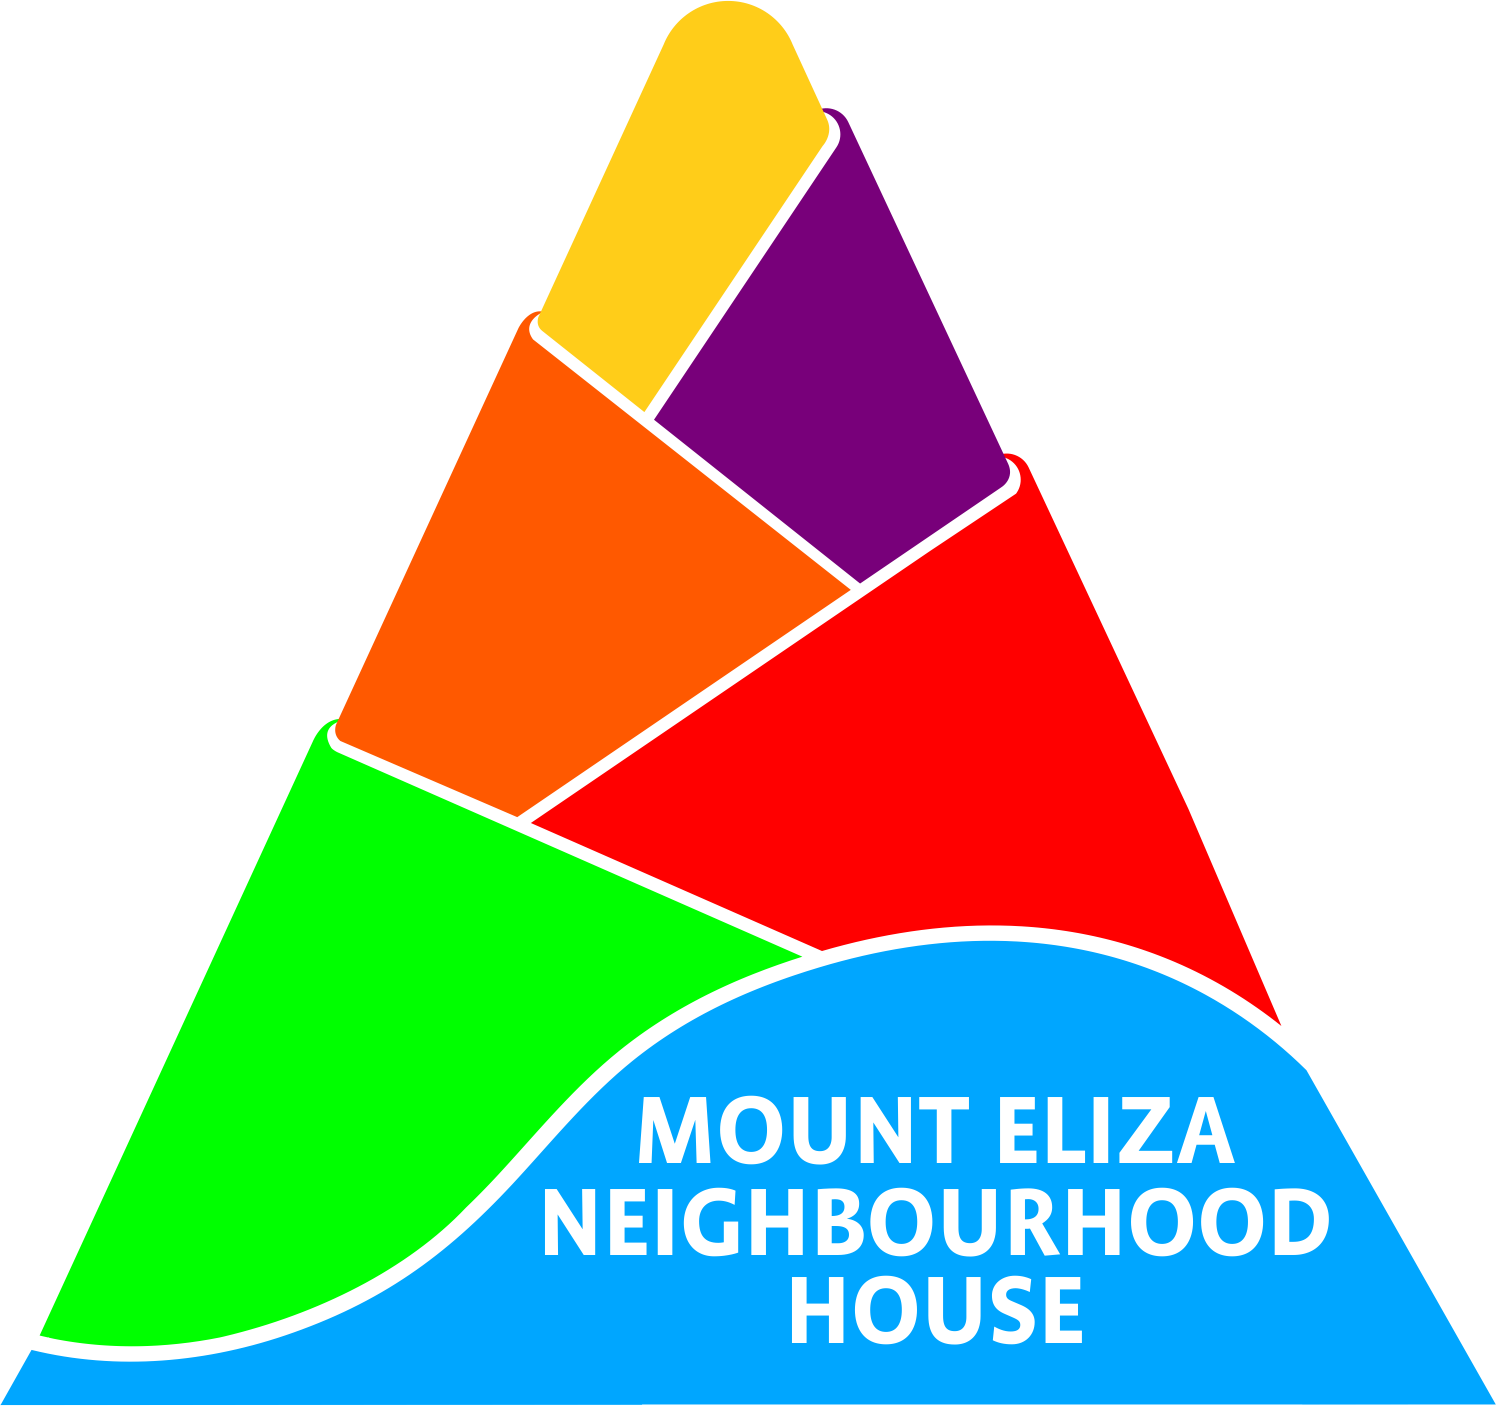 Mt Eliza Neighbourhood House